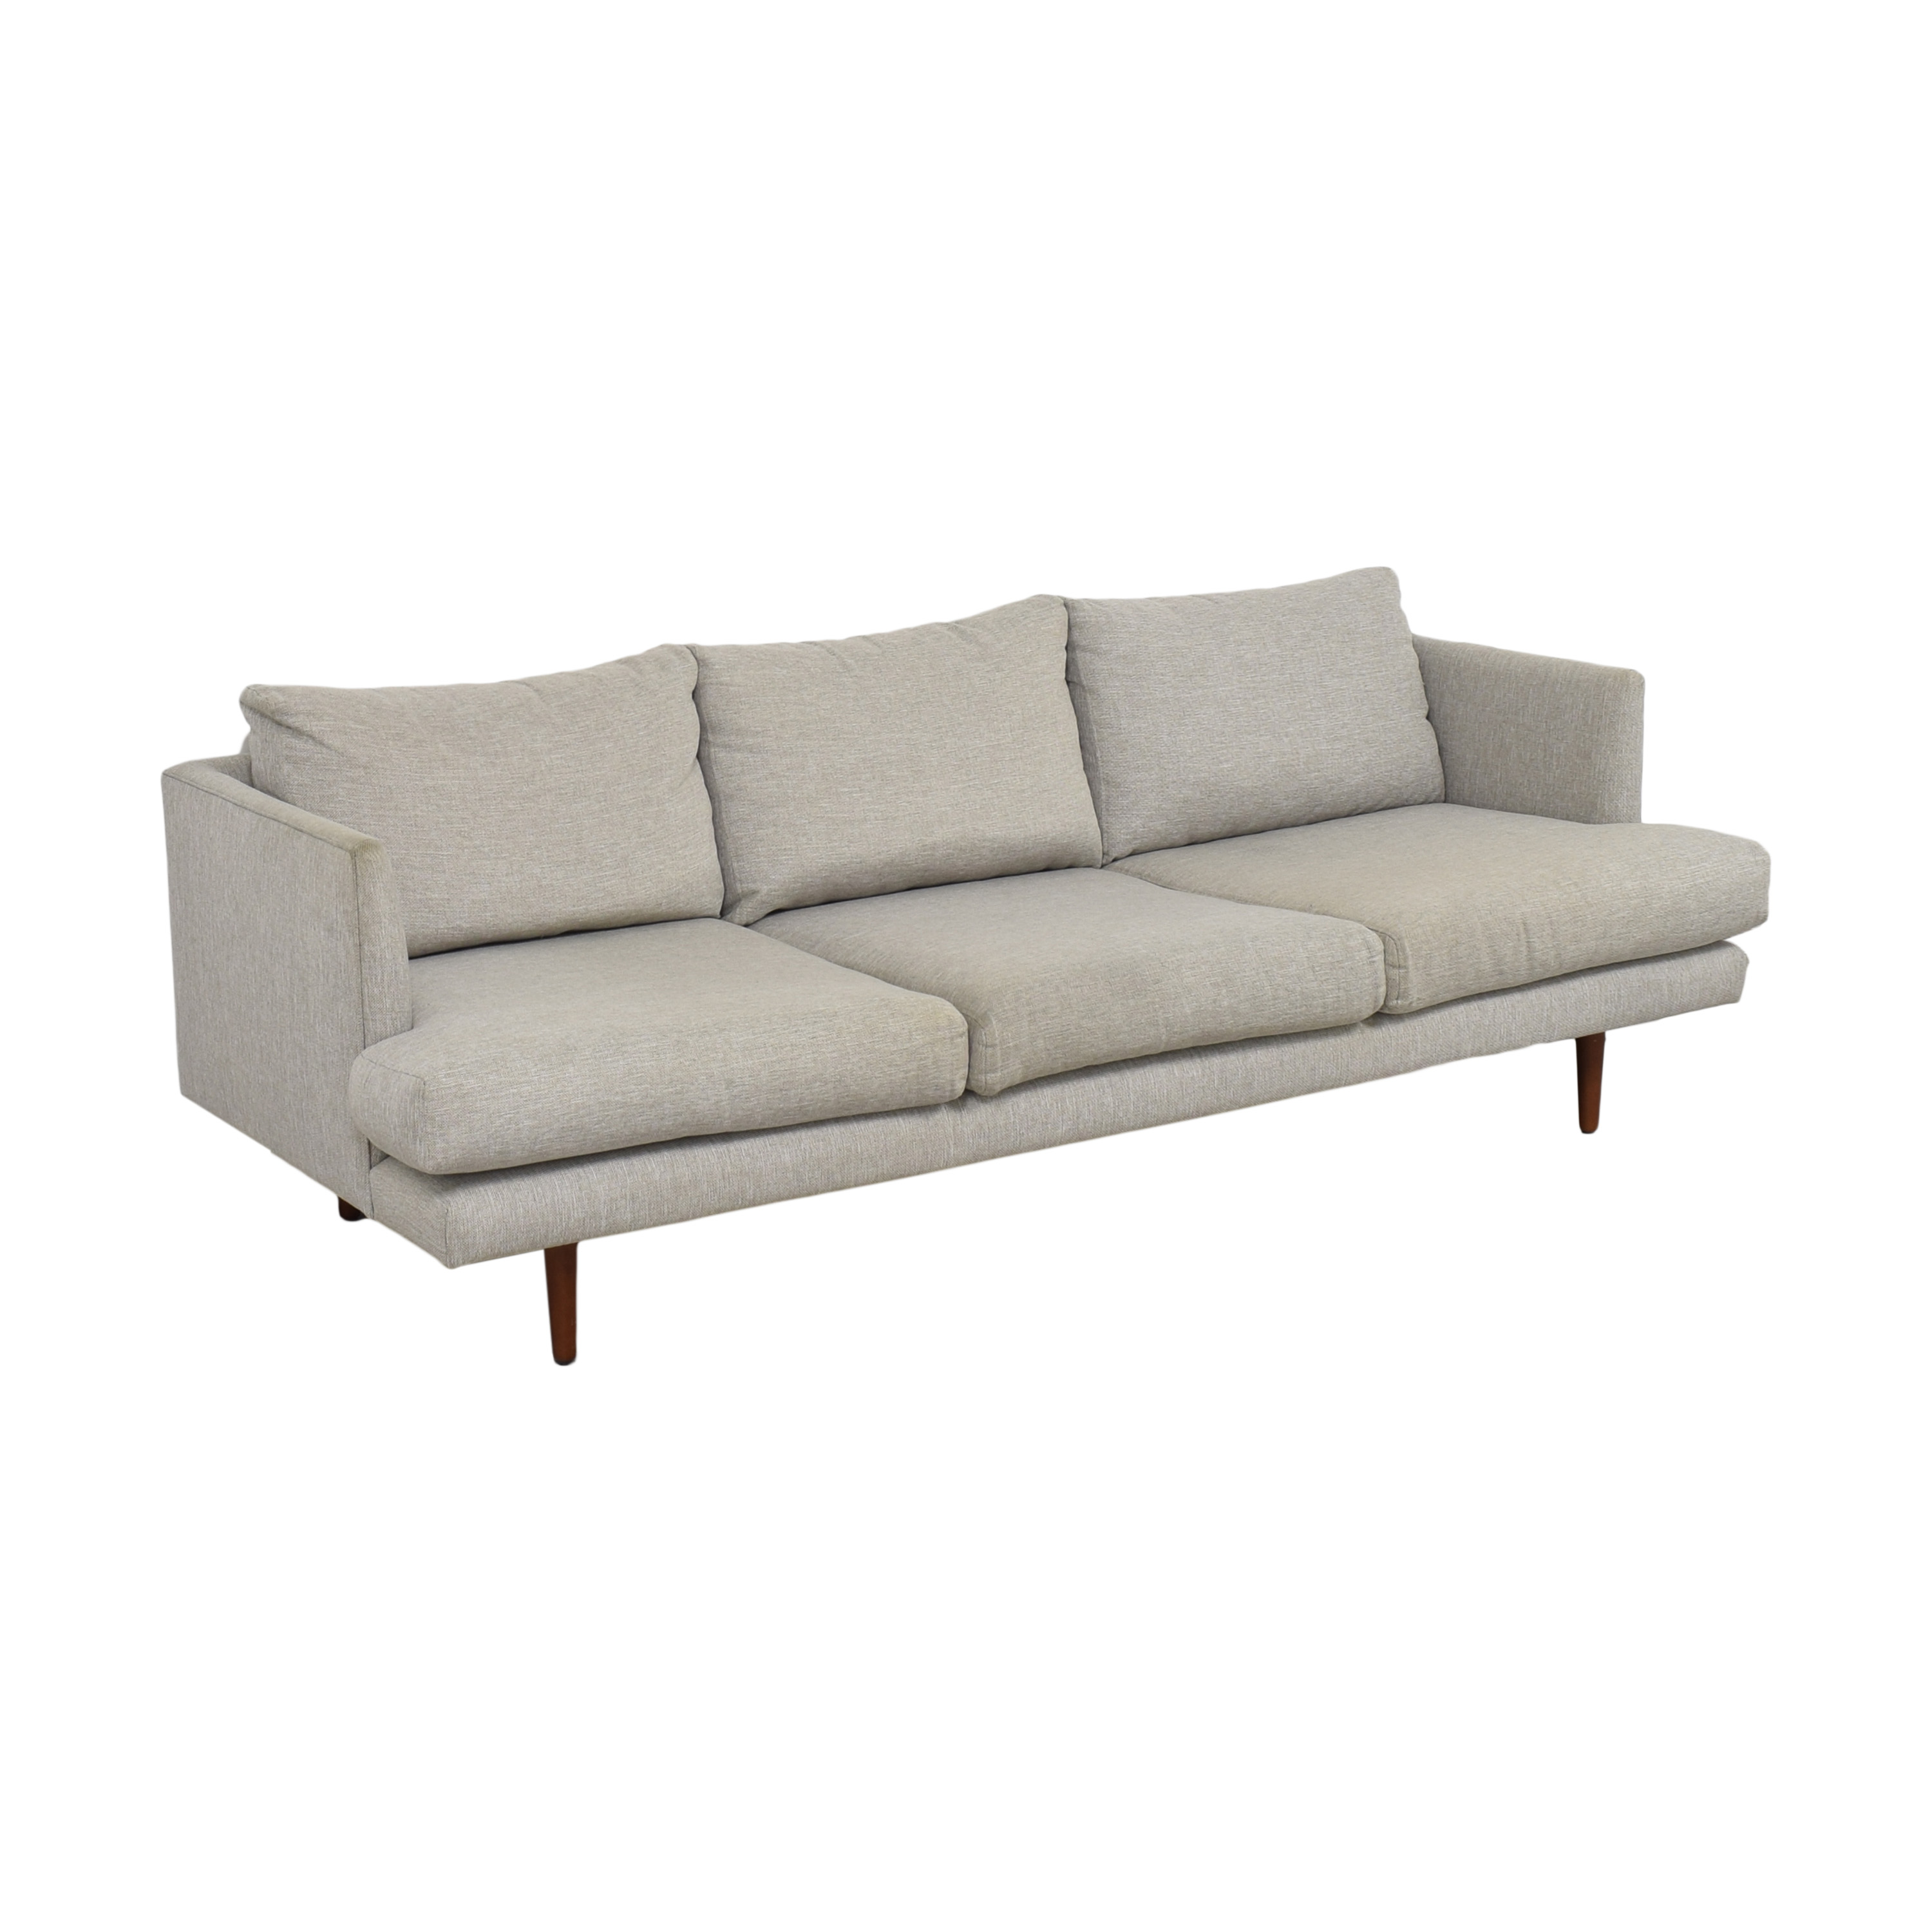 Article Article Burrard Three Cushion Sofa price